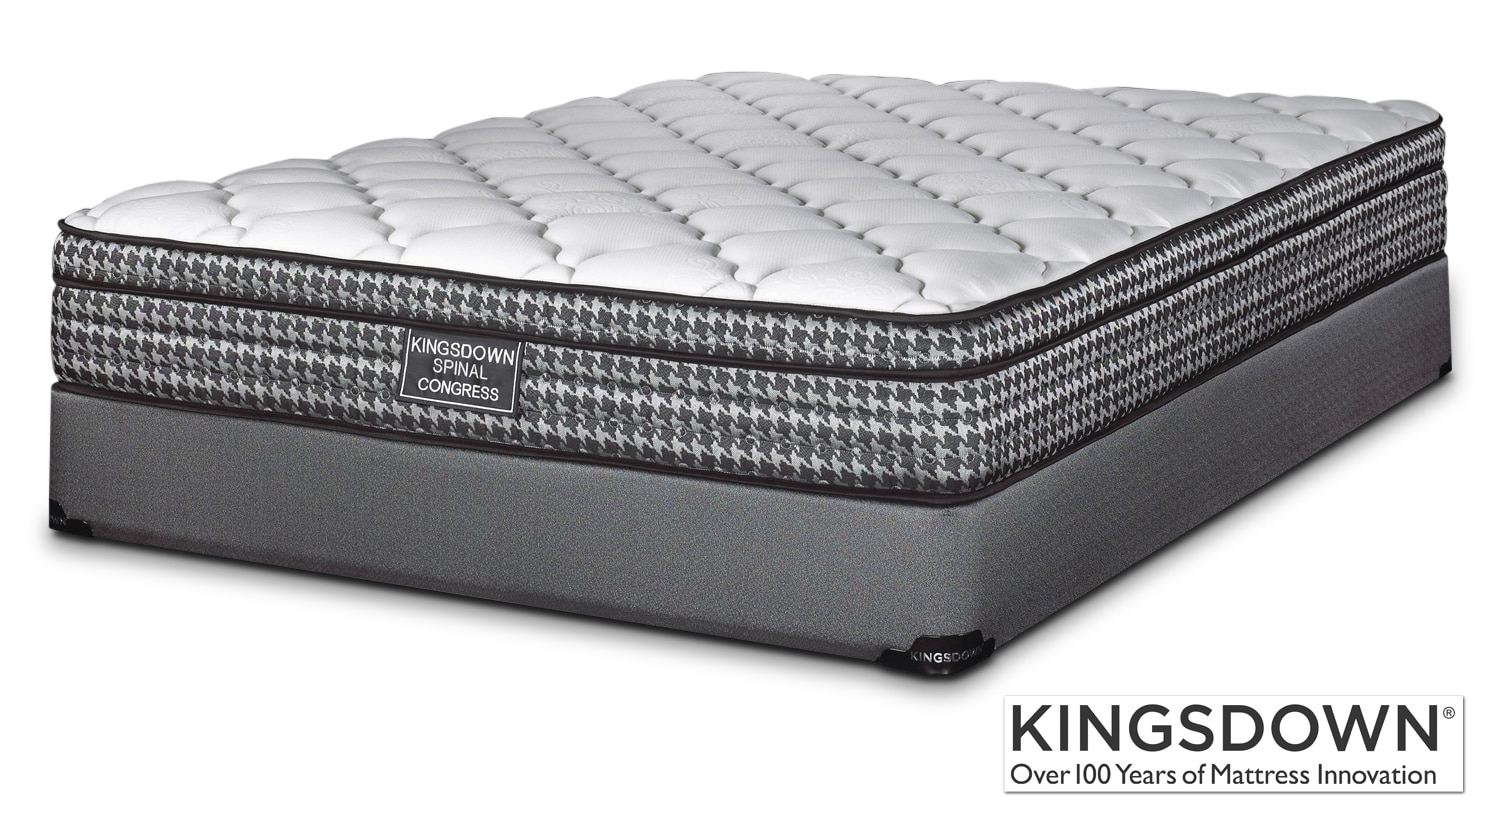 Mattresses and Bedding - Kingsdown Congress Queen Mattress/Boxspring Set